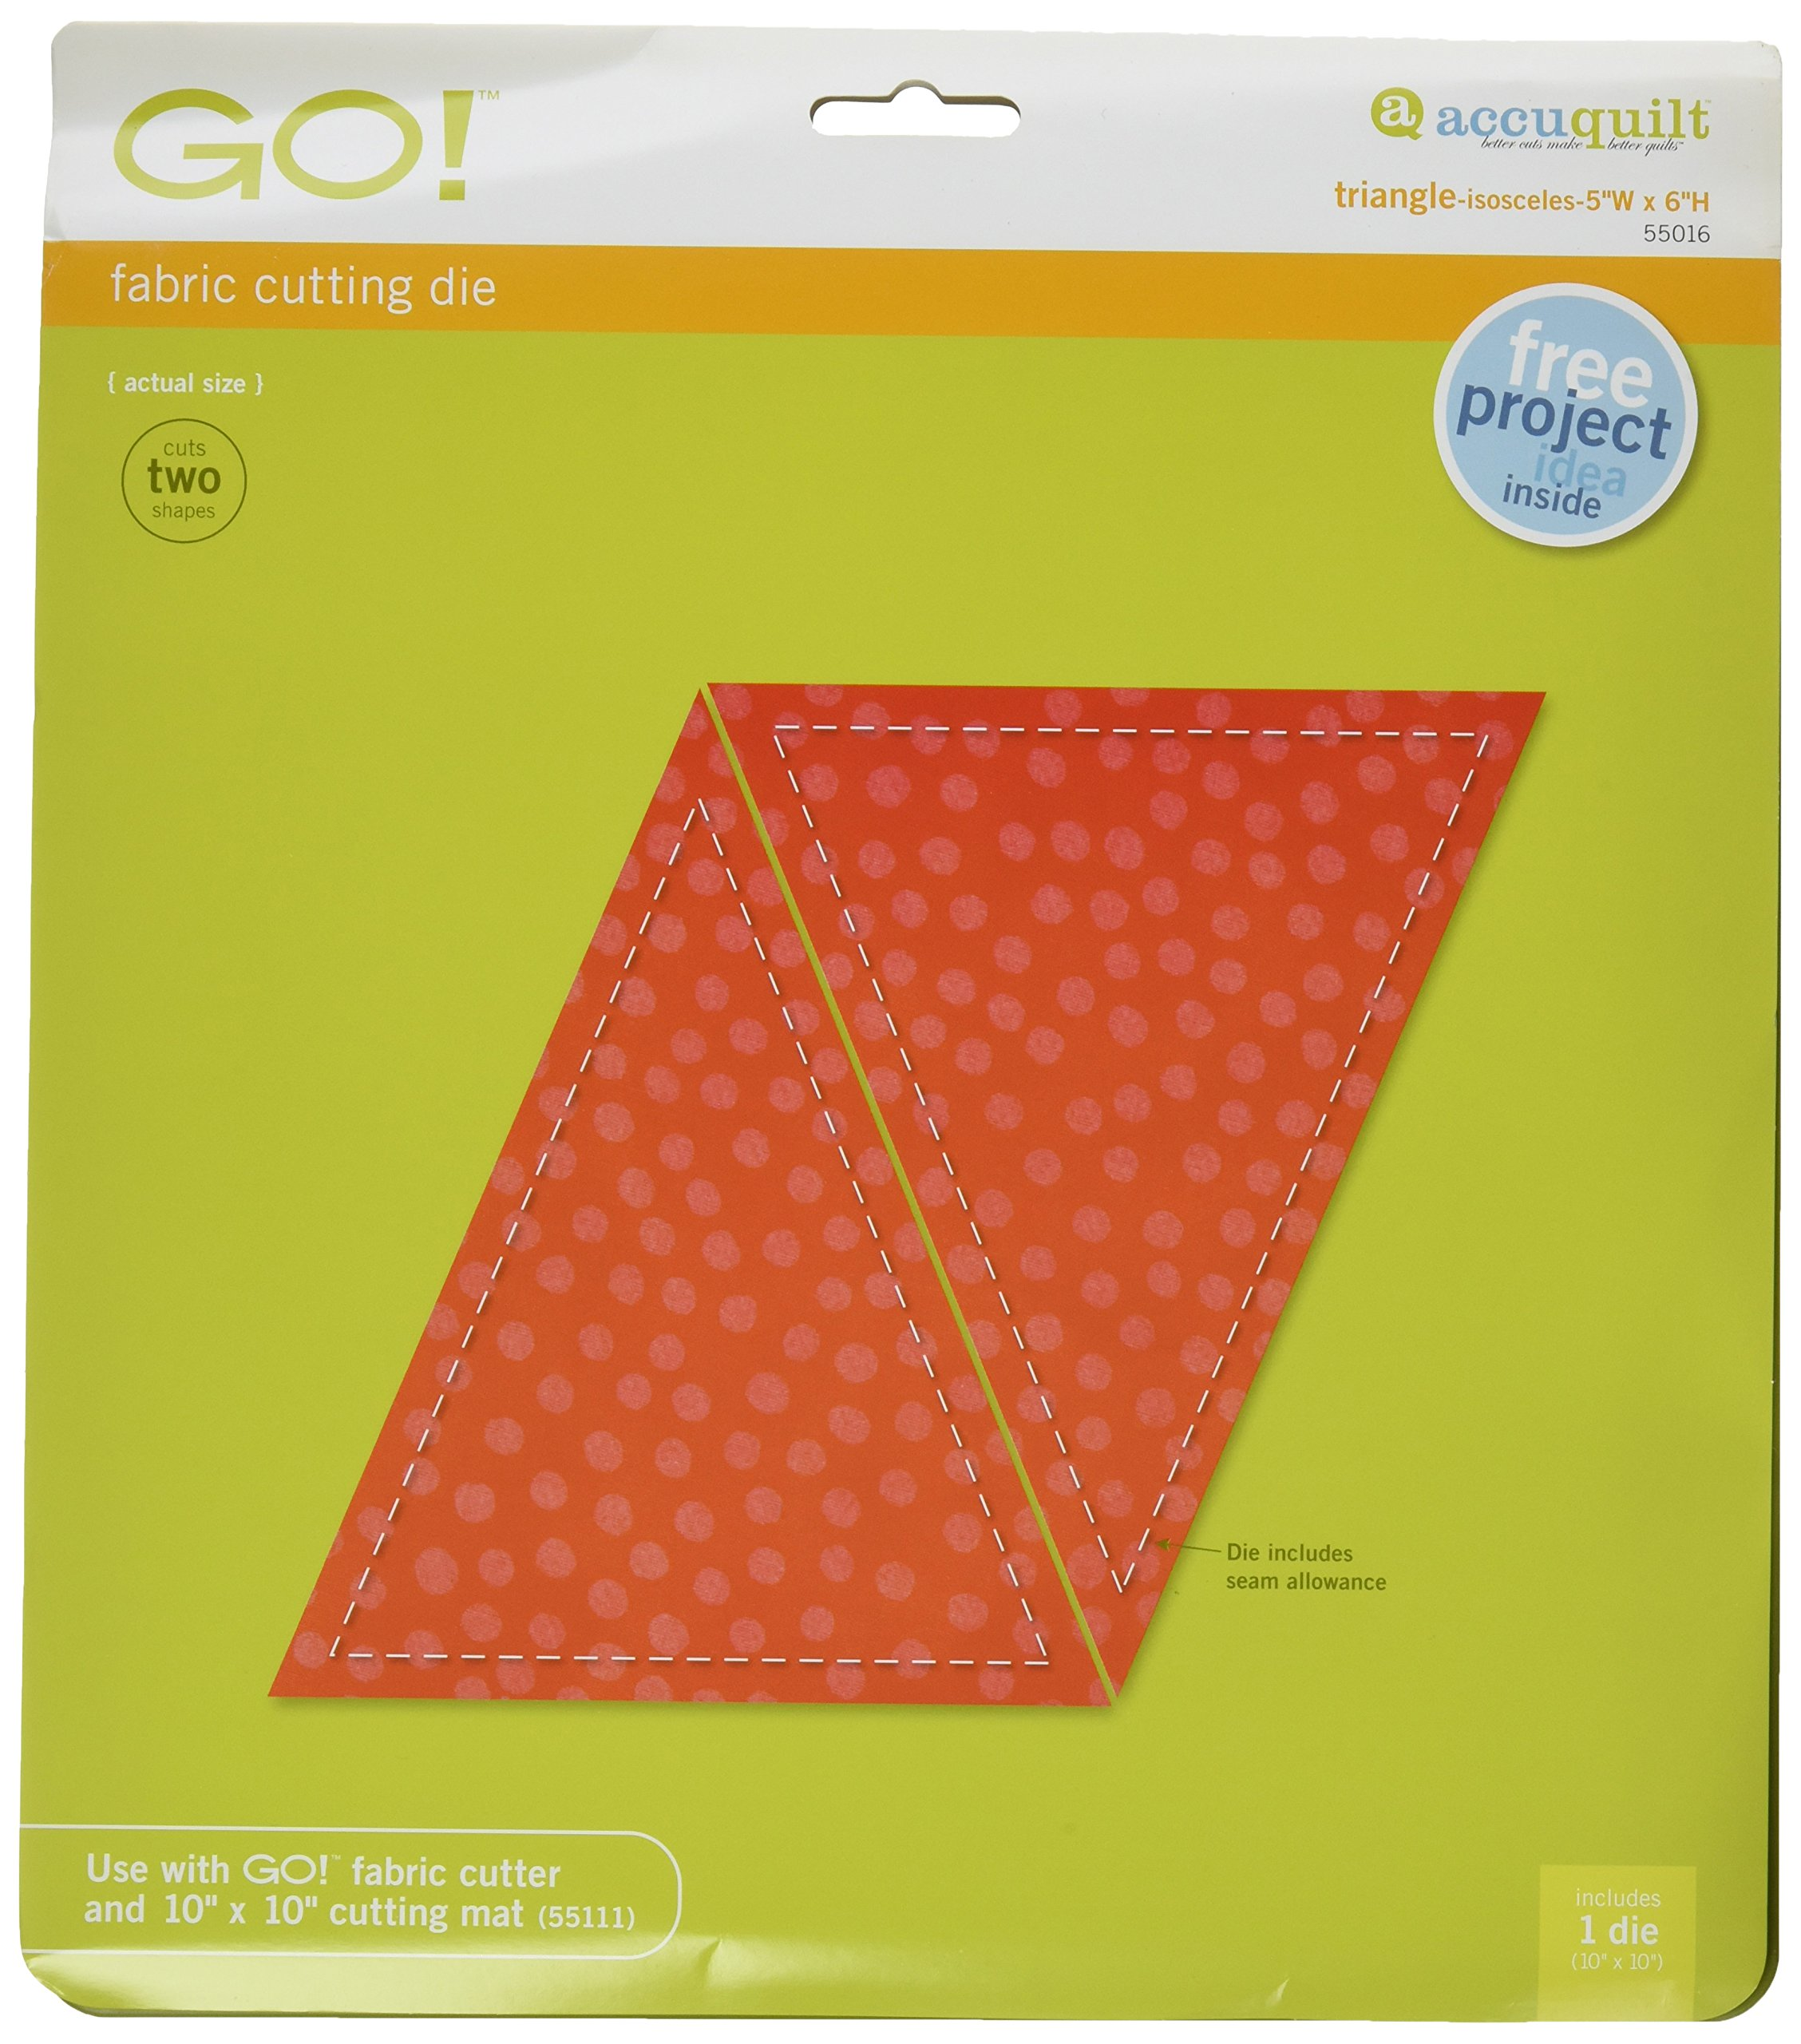 AccuQuilt GO! Fabric Cutting Dies; Triangle-Isosceles; 5-inch-by-6-inch